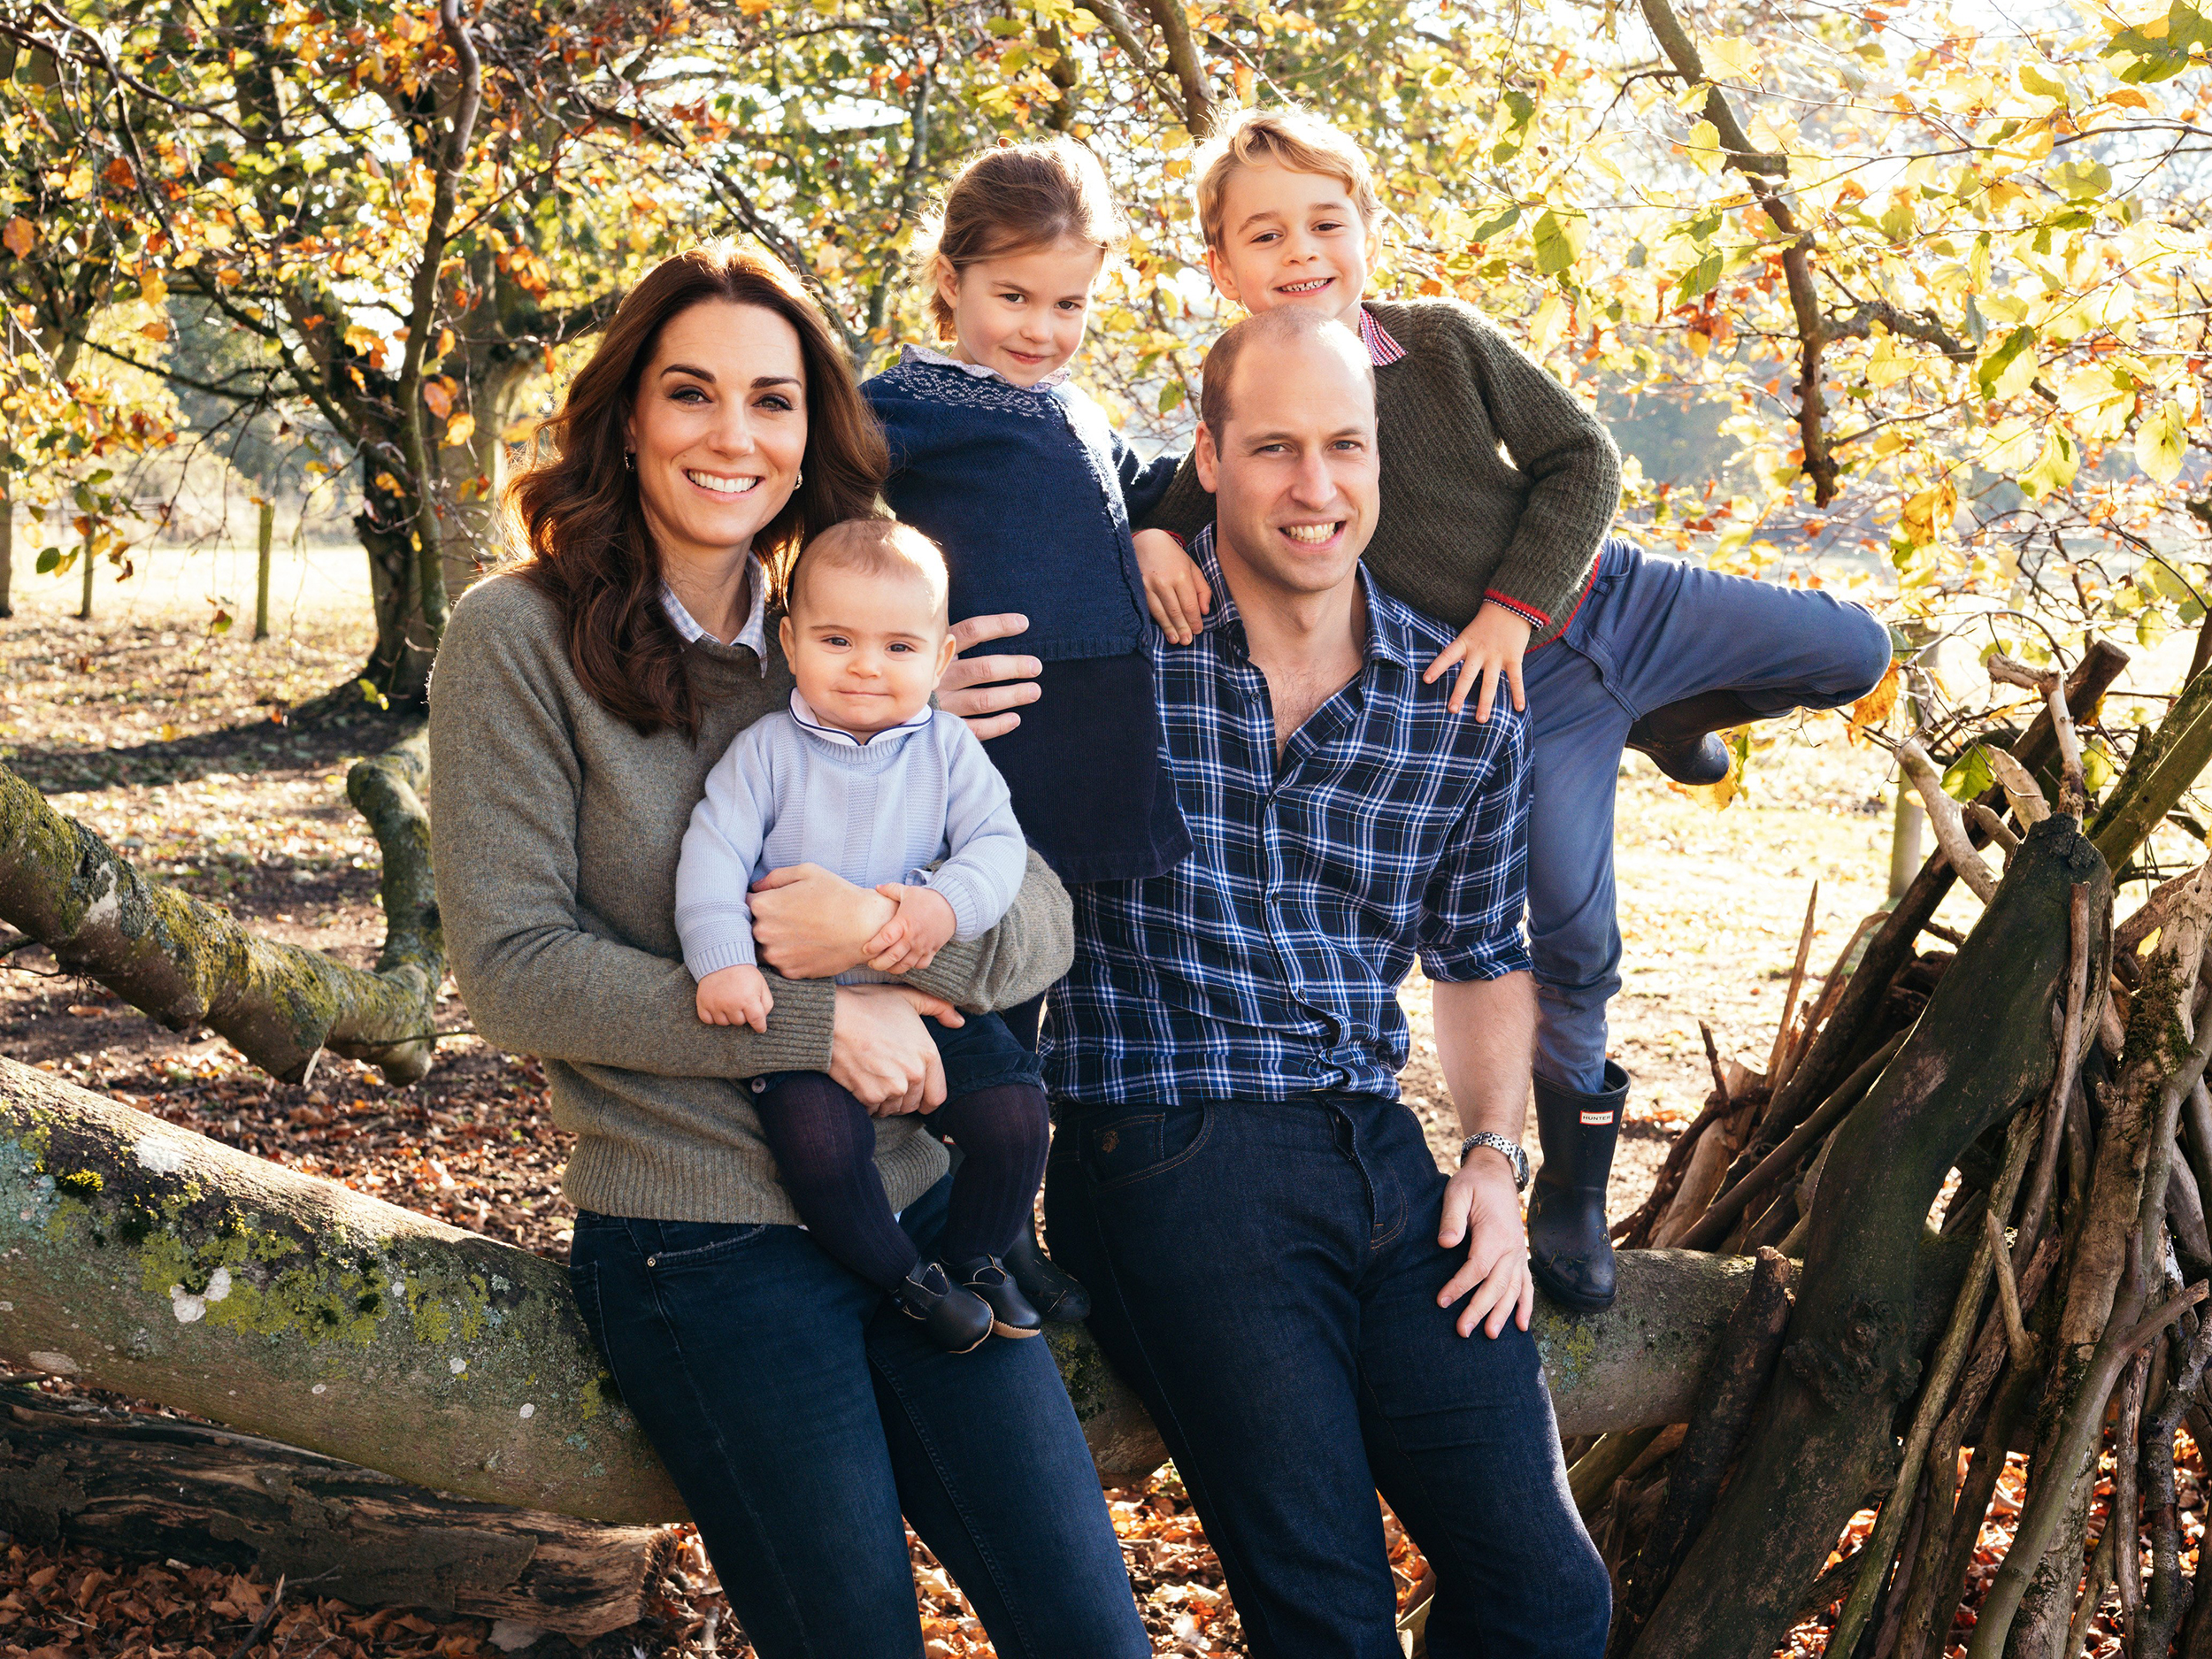 Royal Family Christmas Card 2019 Royal family releases their Christmas card photos   AOL Entertainment